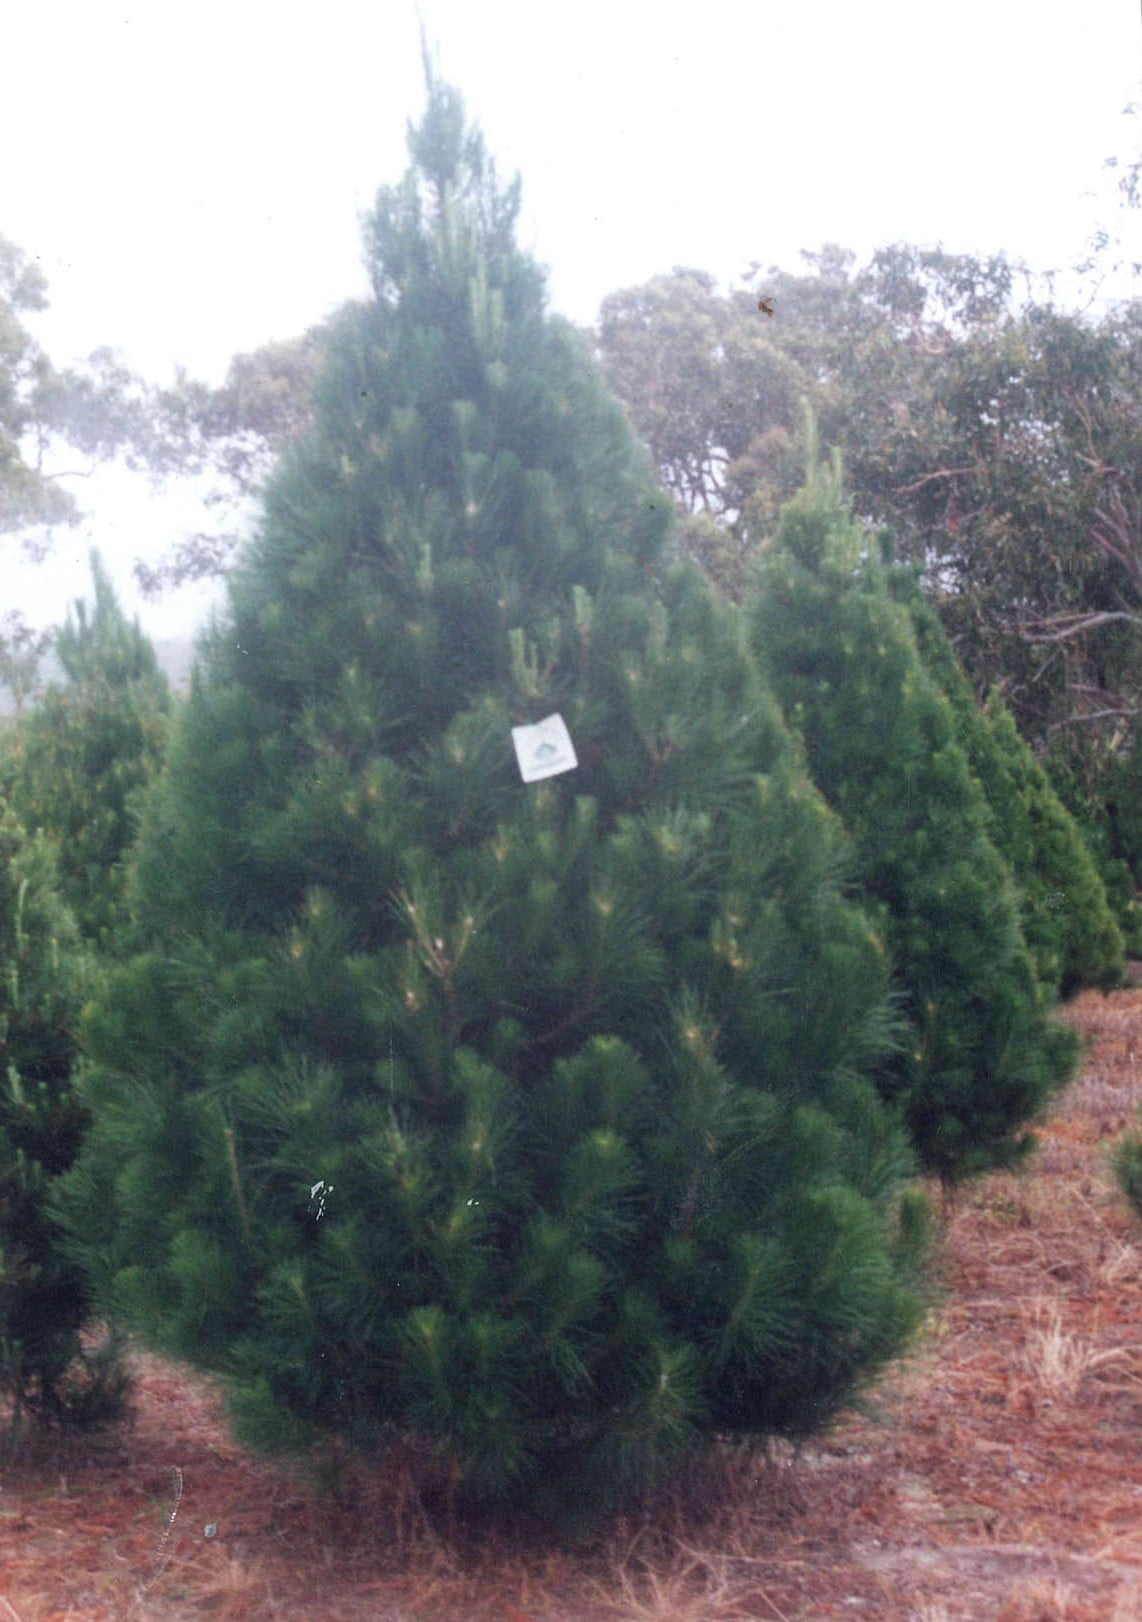 Trees at Woodpatch Christmas tree farm in Somersby, ready for delivery to waiting clients